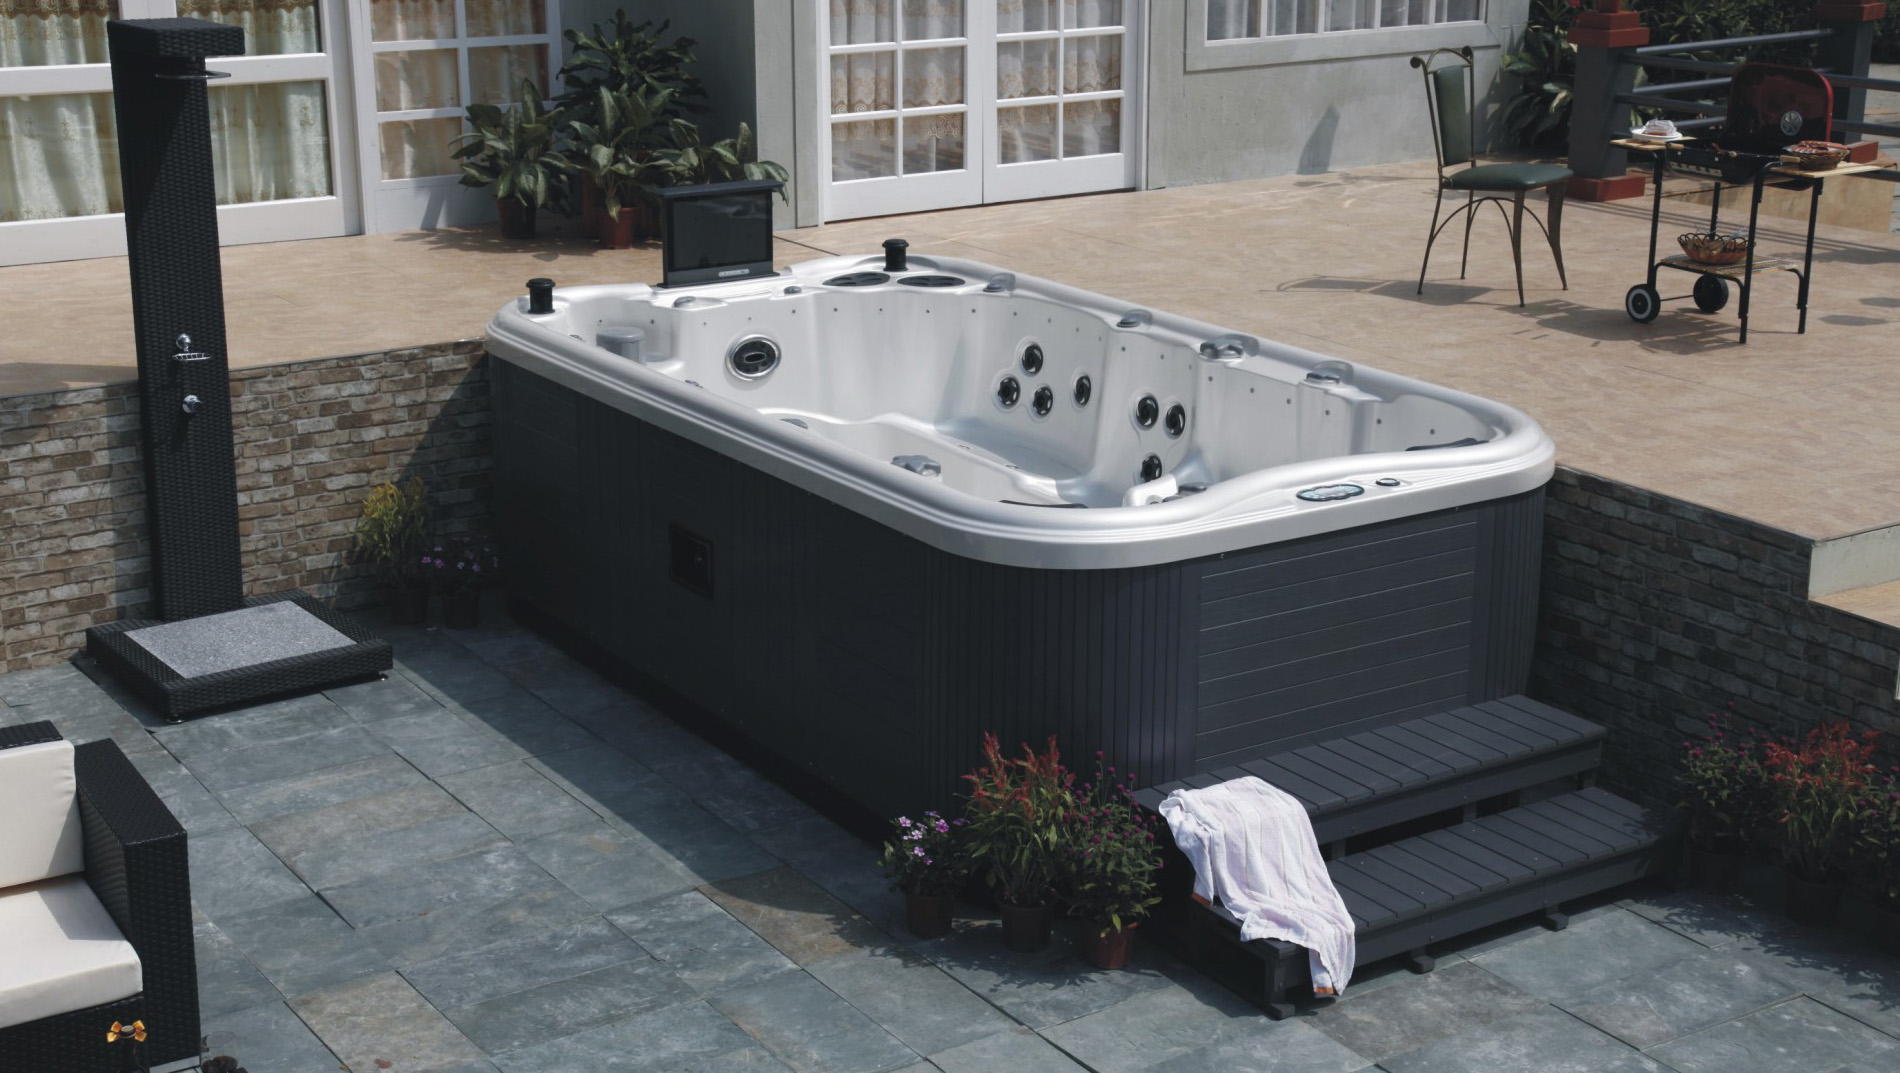 McCoy Whirlpool & Spa Repair | McCoy Contracting